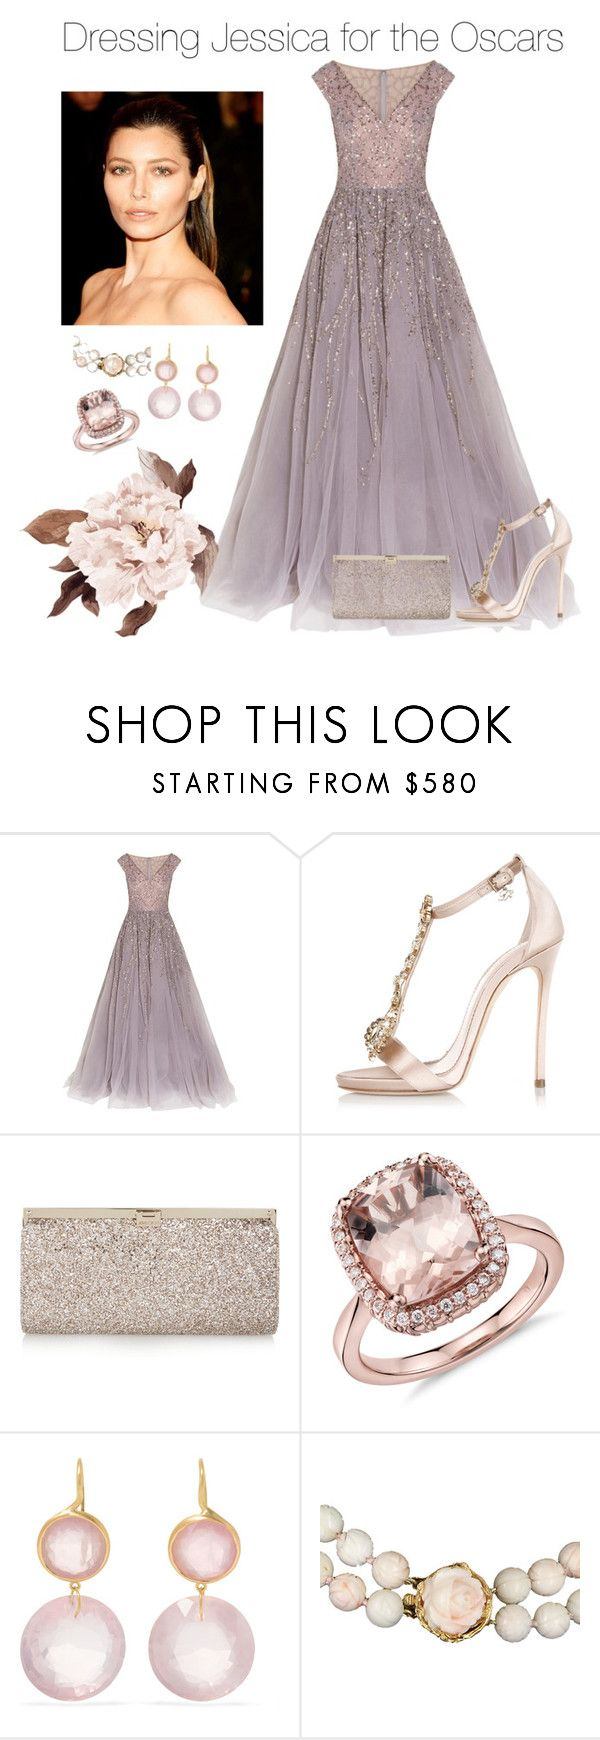 """Dressing Jessica for the Oscars"" by hairkat ❤ liked on Polyvore featuring beauty, Georges Hobeika, Dsquared2, Jimmy Choo, Blue Nile, Marie Hélène de Taillac and Vintage"